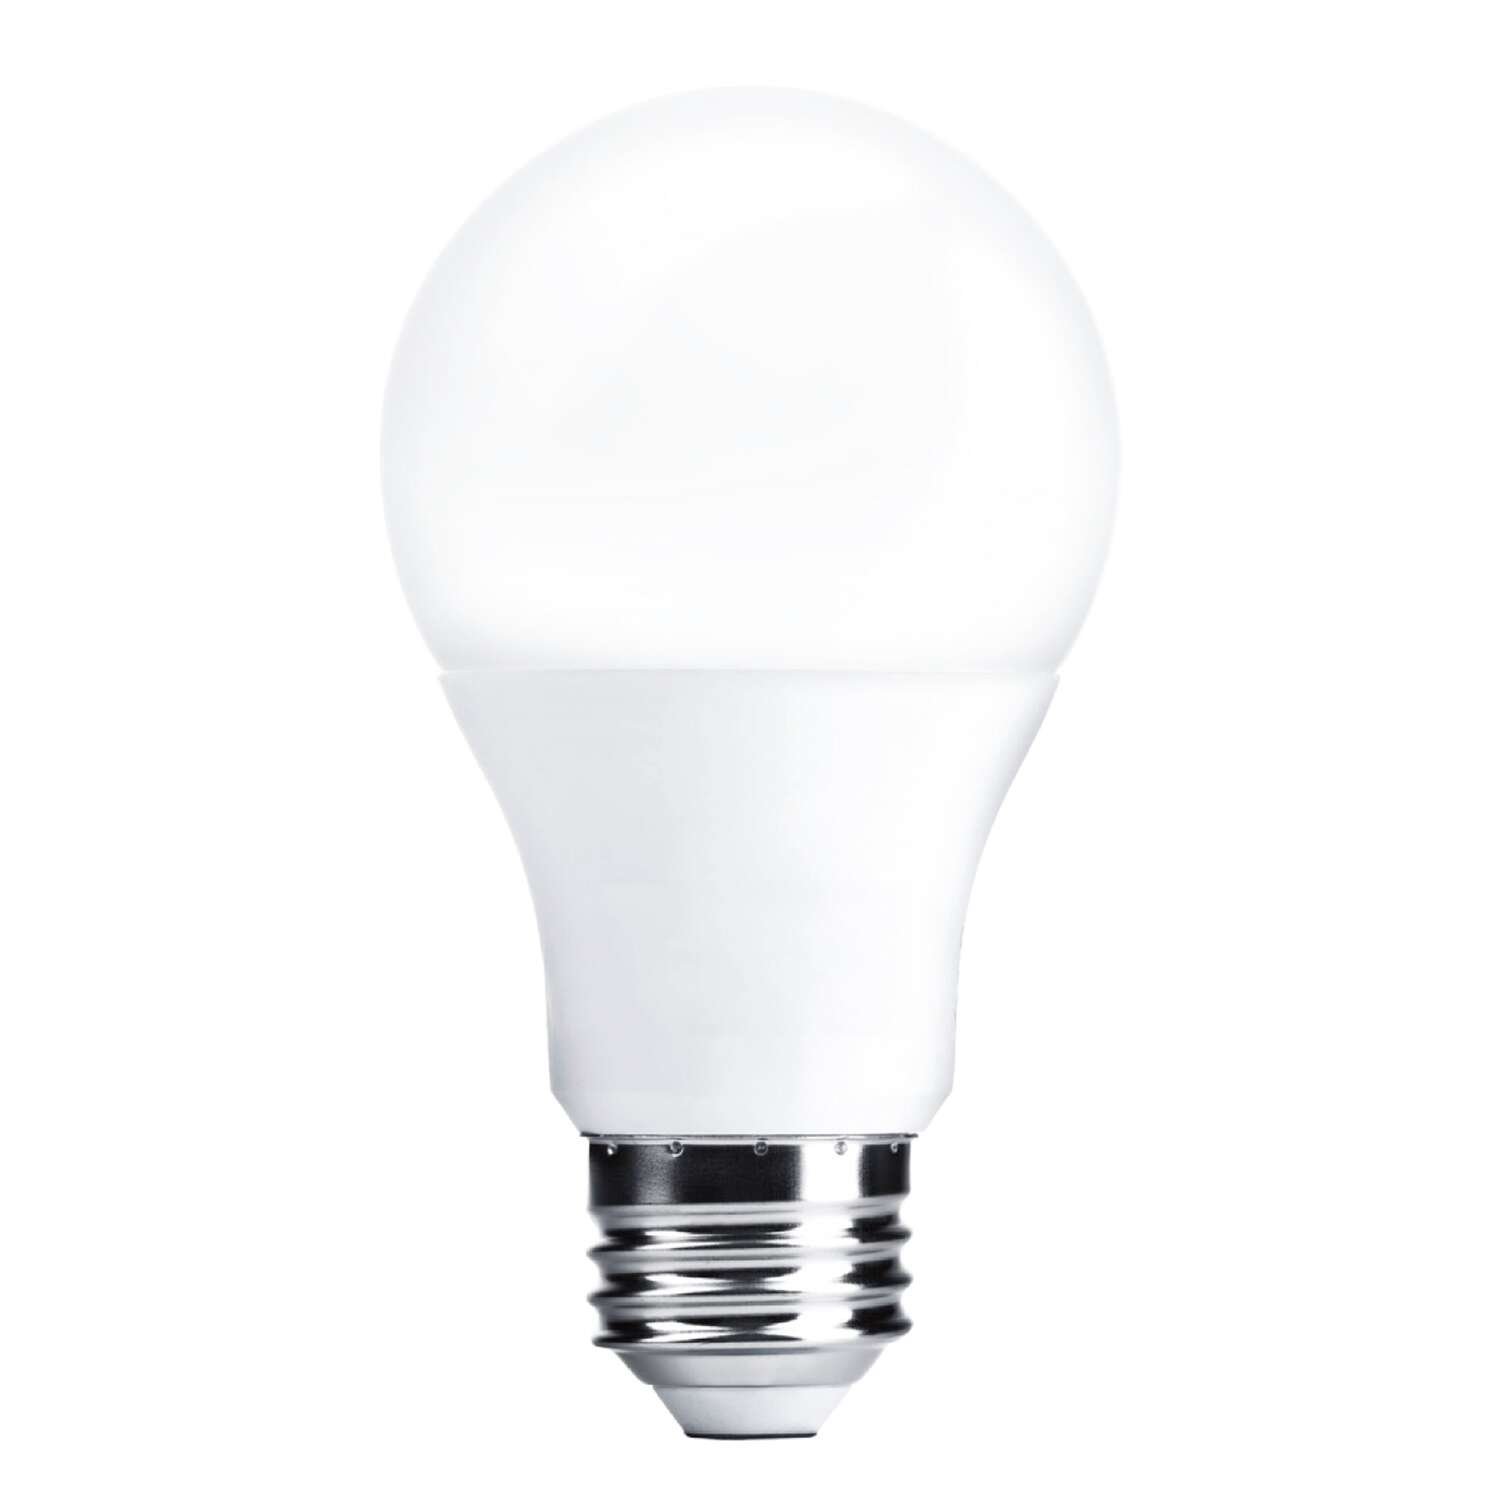 Globe Electric  Disinfecting Germicidal Light Bulb  A19  E26 (Medium)  LED Disinfection Bulb  White